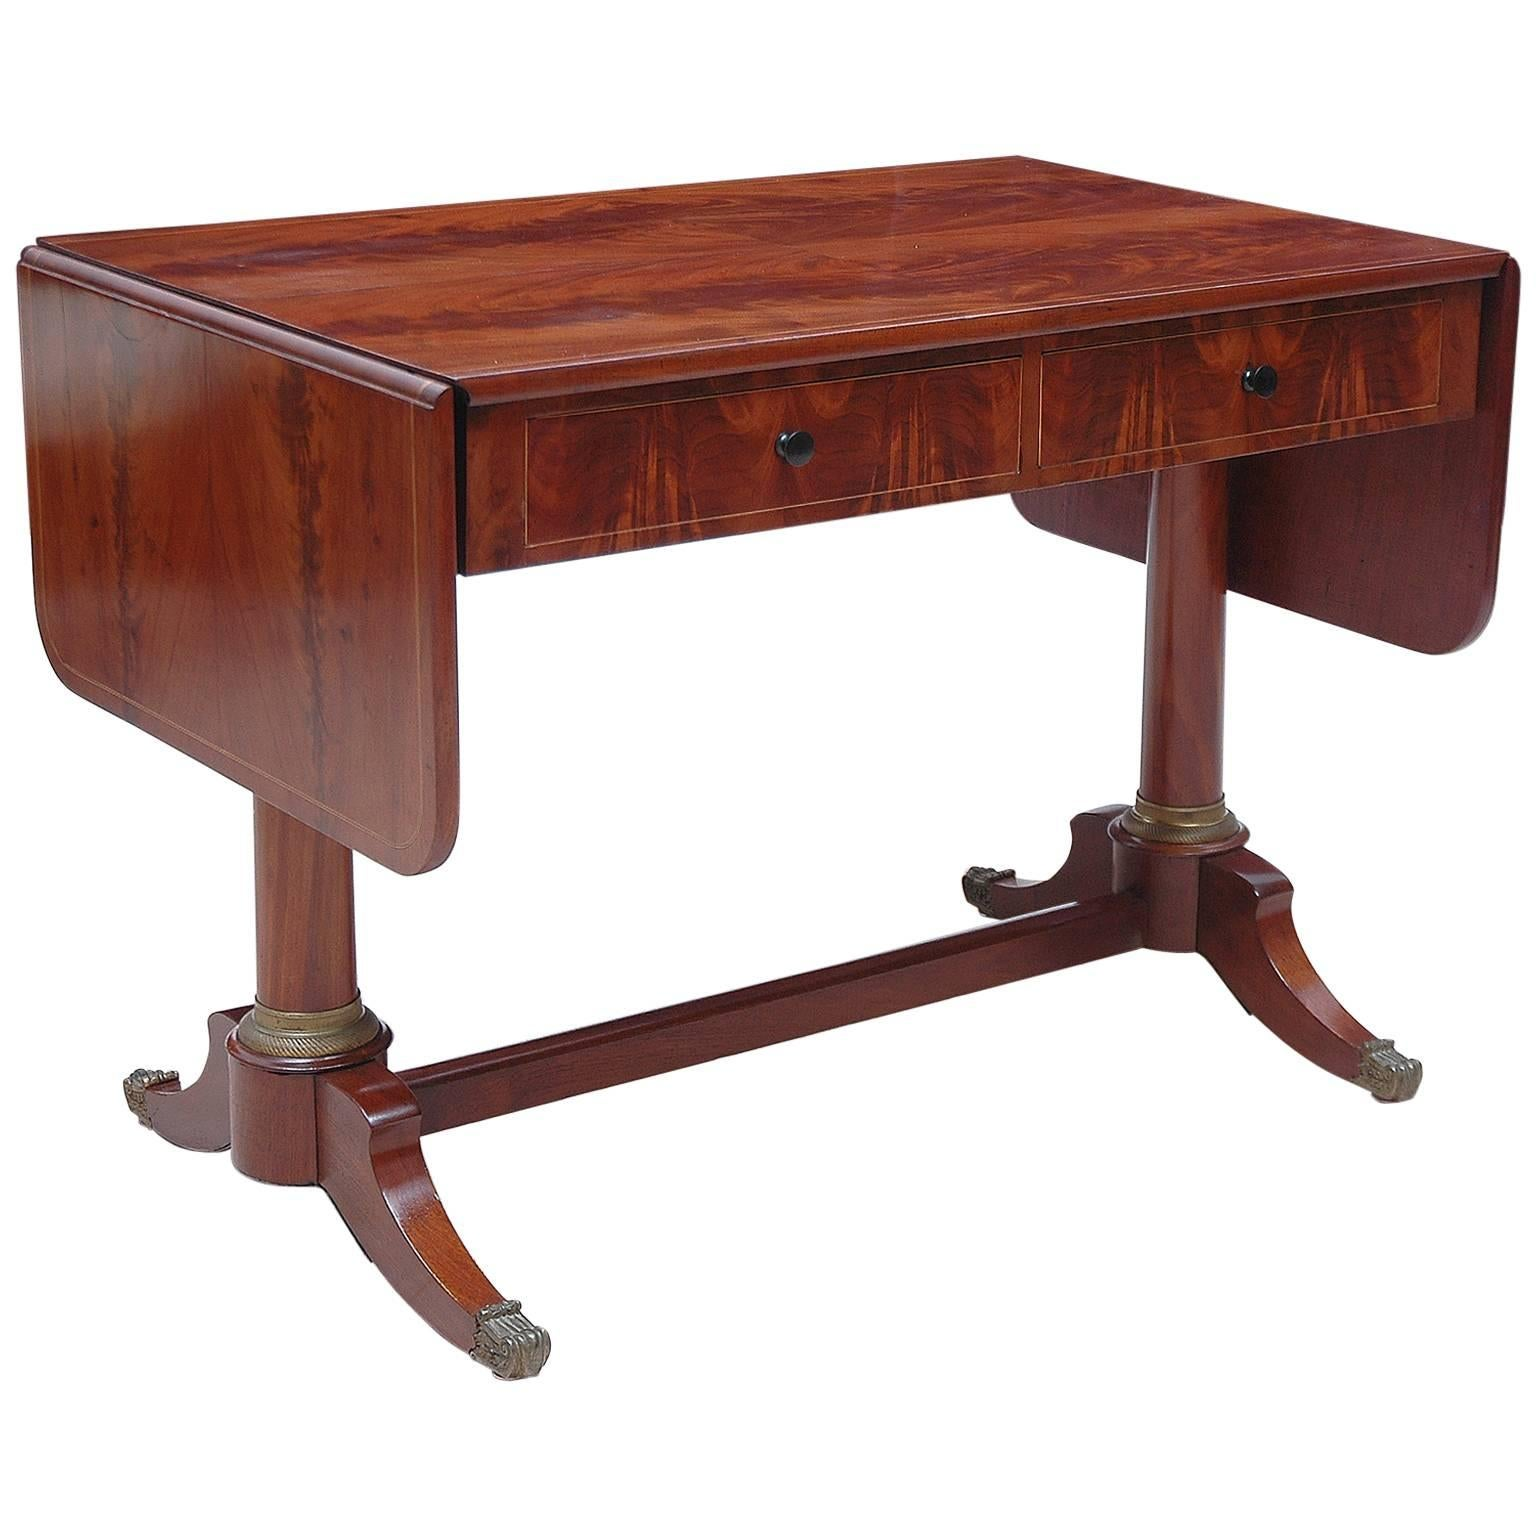 Antique English Regency Sofa/ Writing Table in Mahogany with Ormolu & Drawers